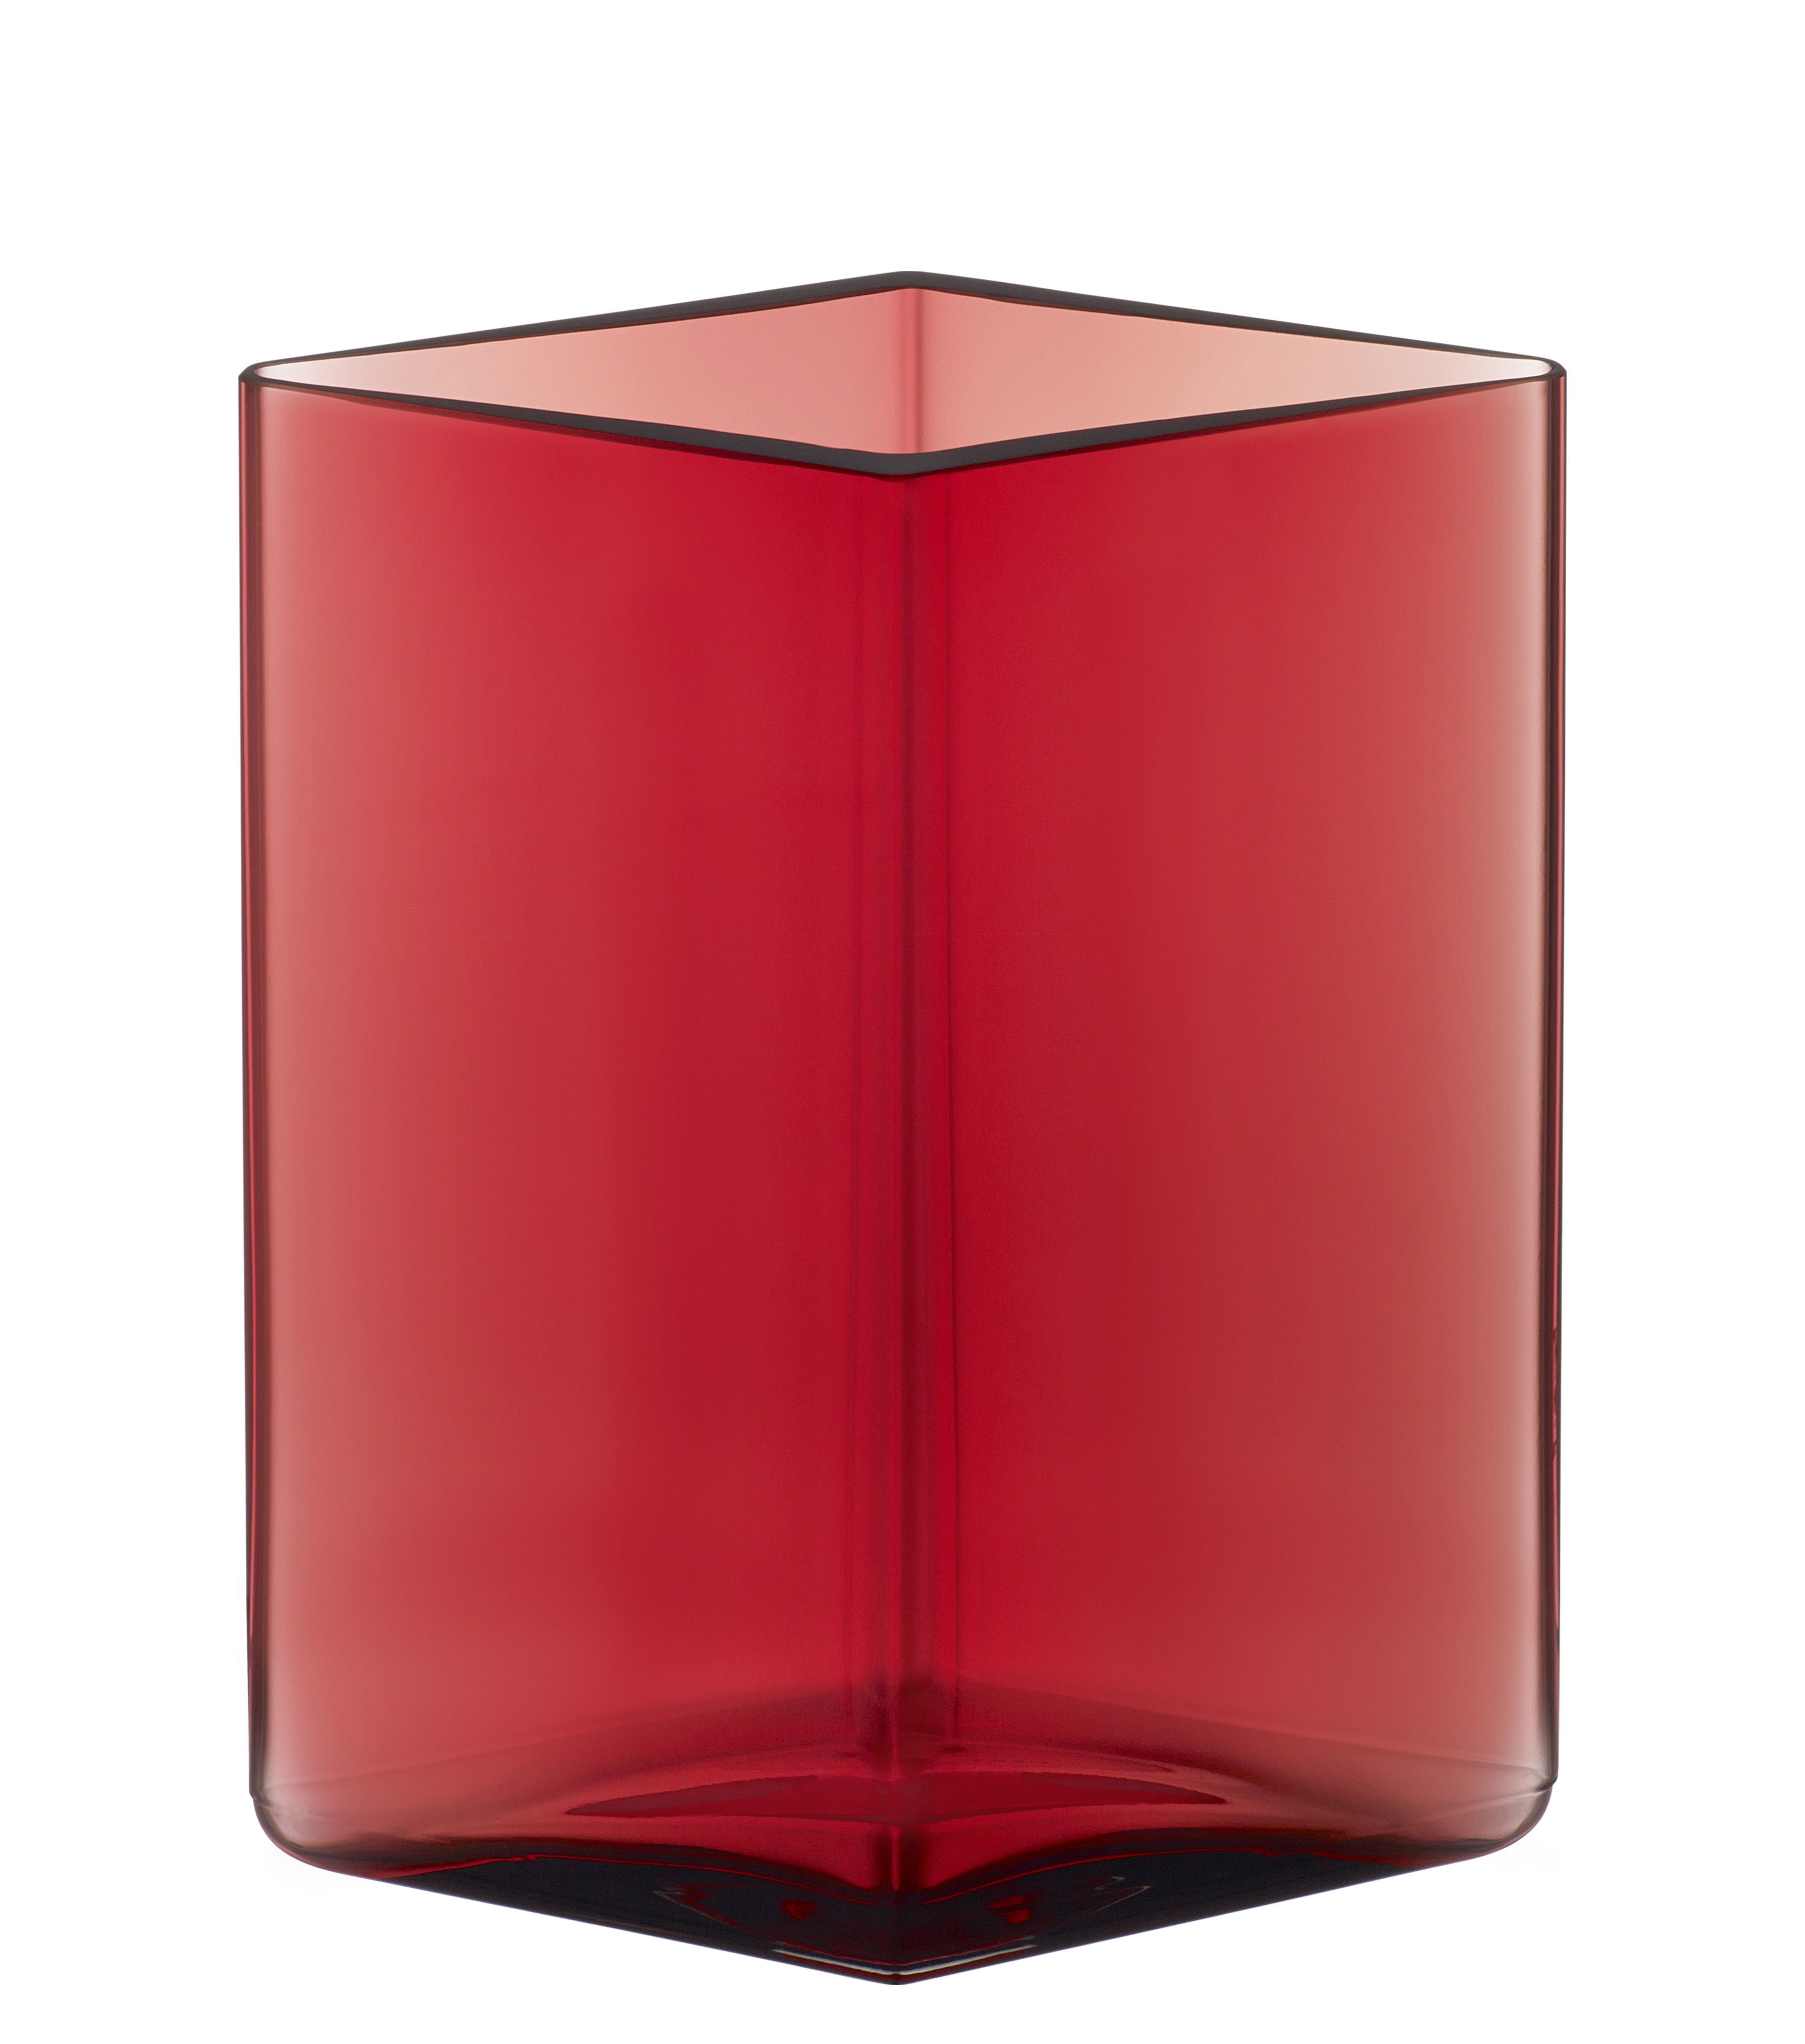 Decoration - Vases - Ruutu Vase - by Ronan & Erwan Bouroullec / 11,5 x 14 cm by Iittala - Cranberry red - Mouth blown glass